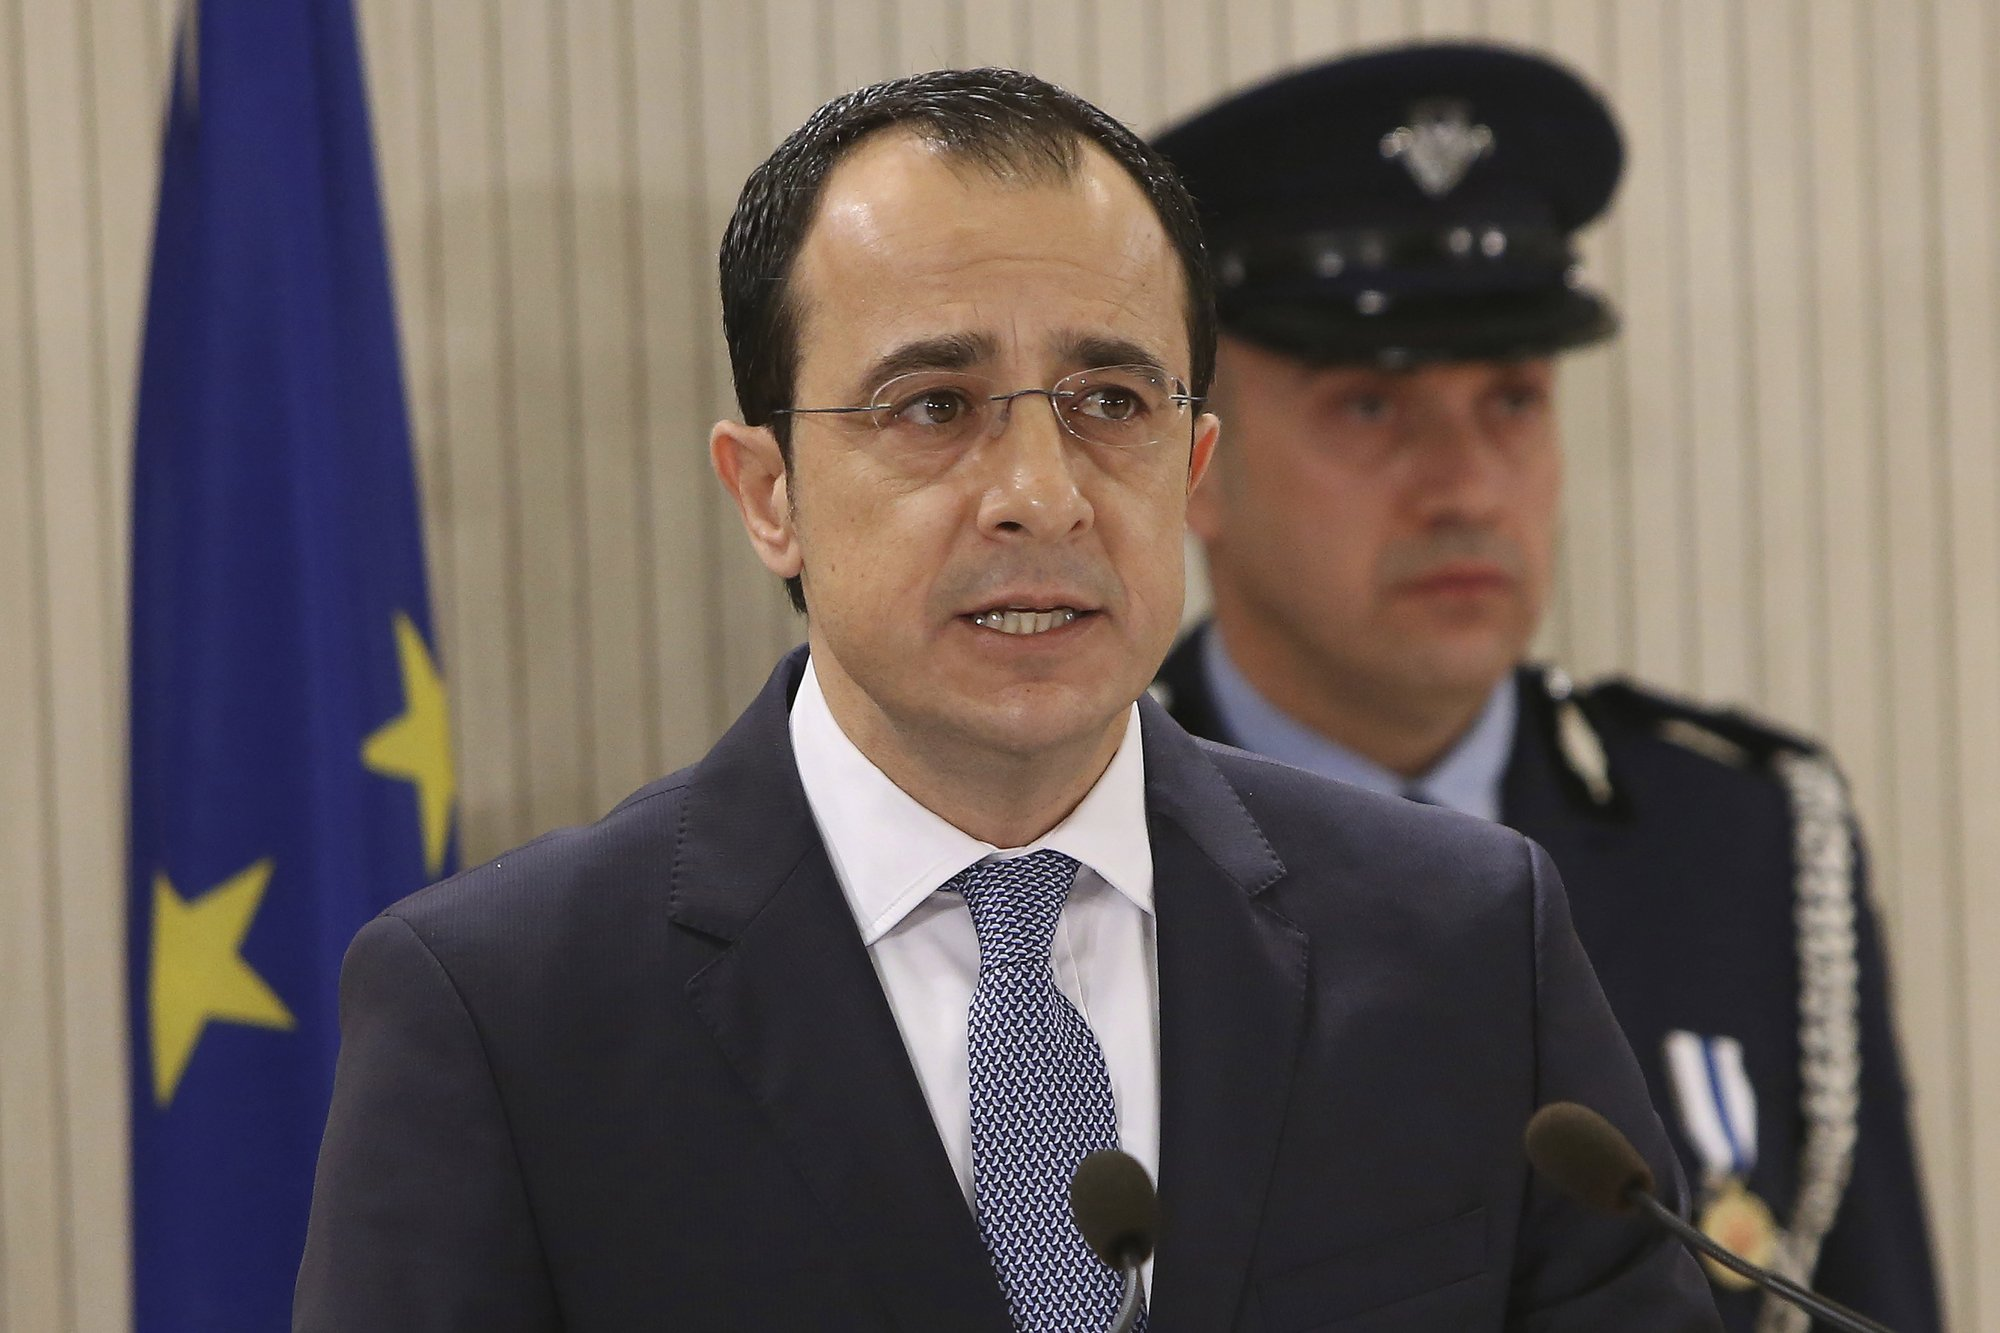 Cyprus: US to lift Cyprus arms embargo in security boost